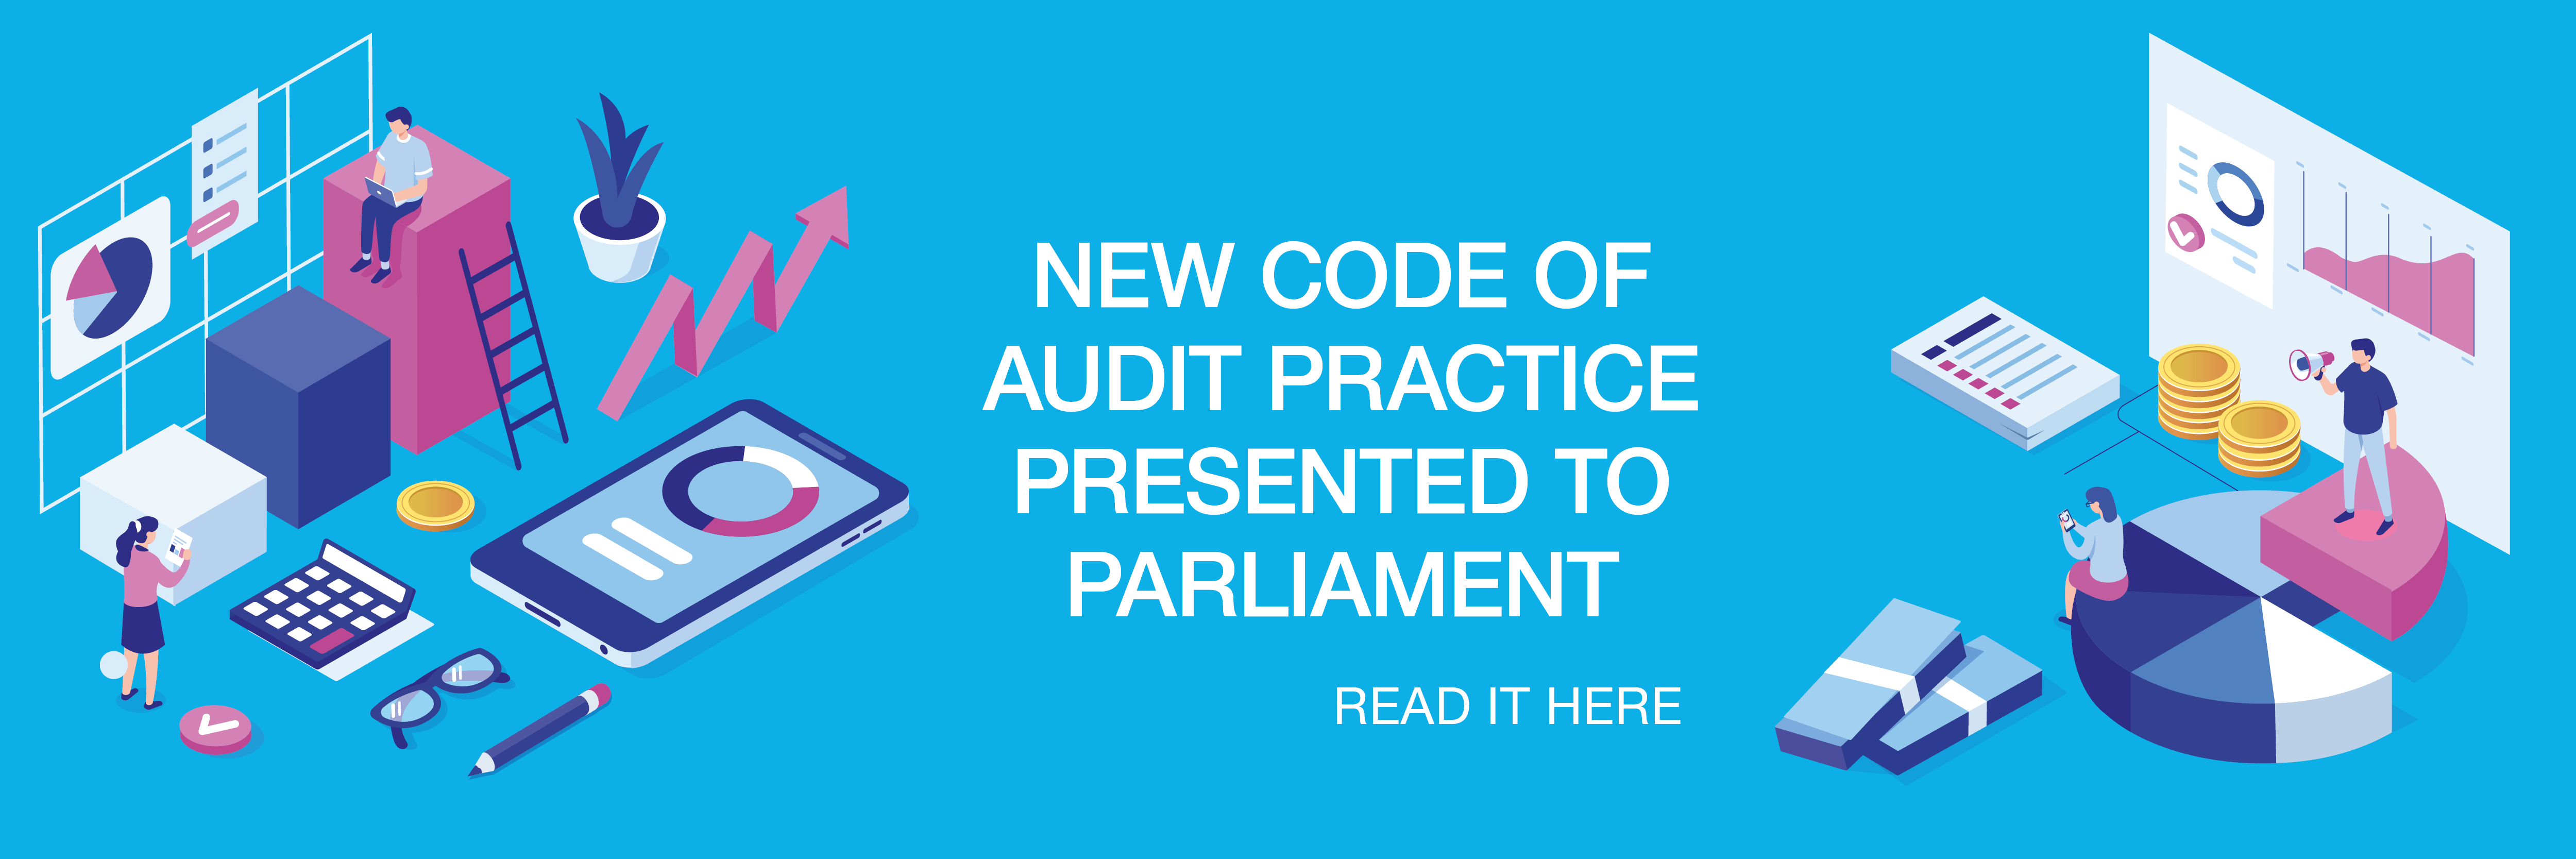 New code of audit practice presented to parliament - home page banner